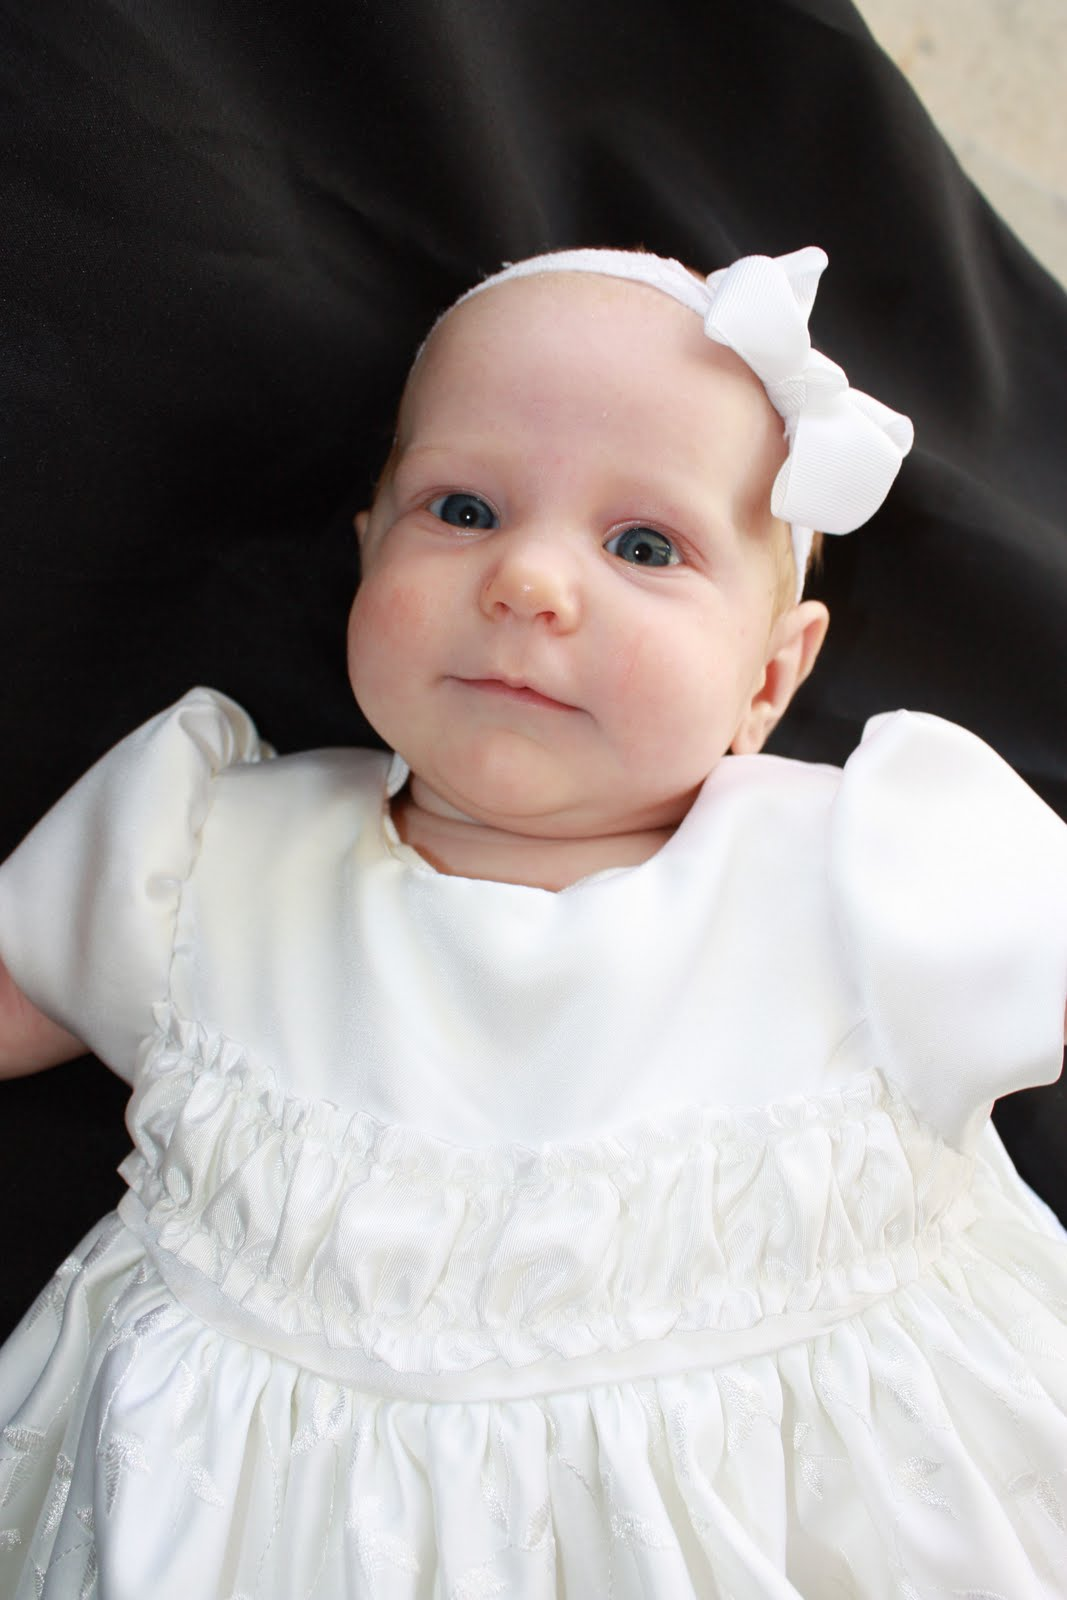 Libby s Latest Baby Blessing Dress Reveal